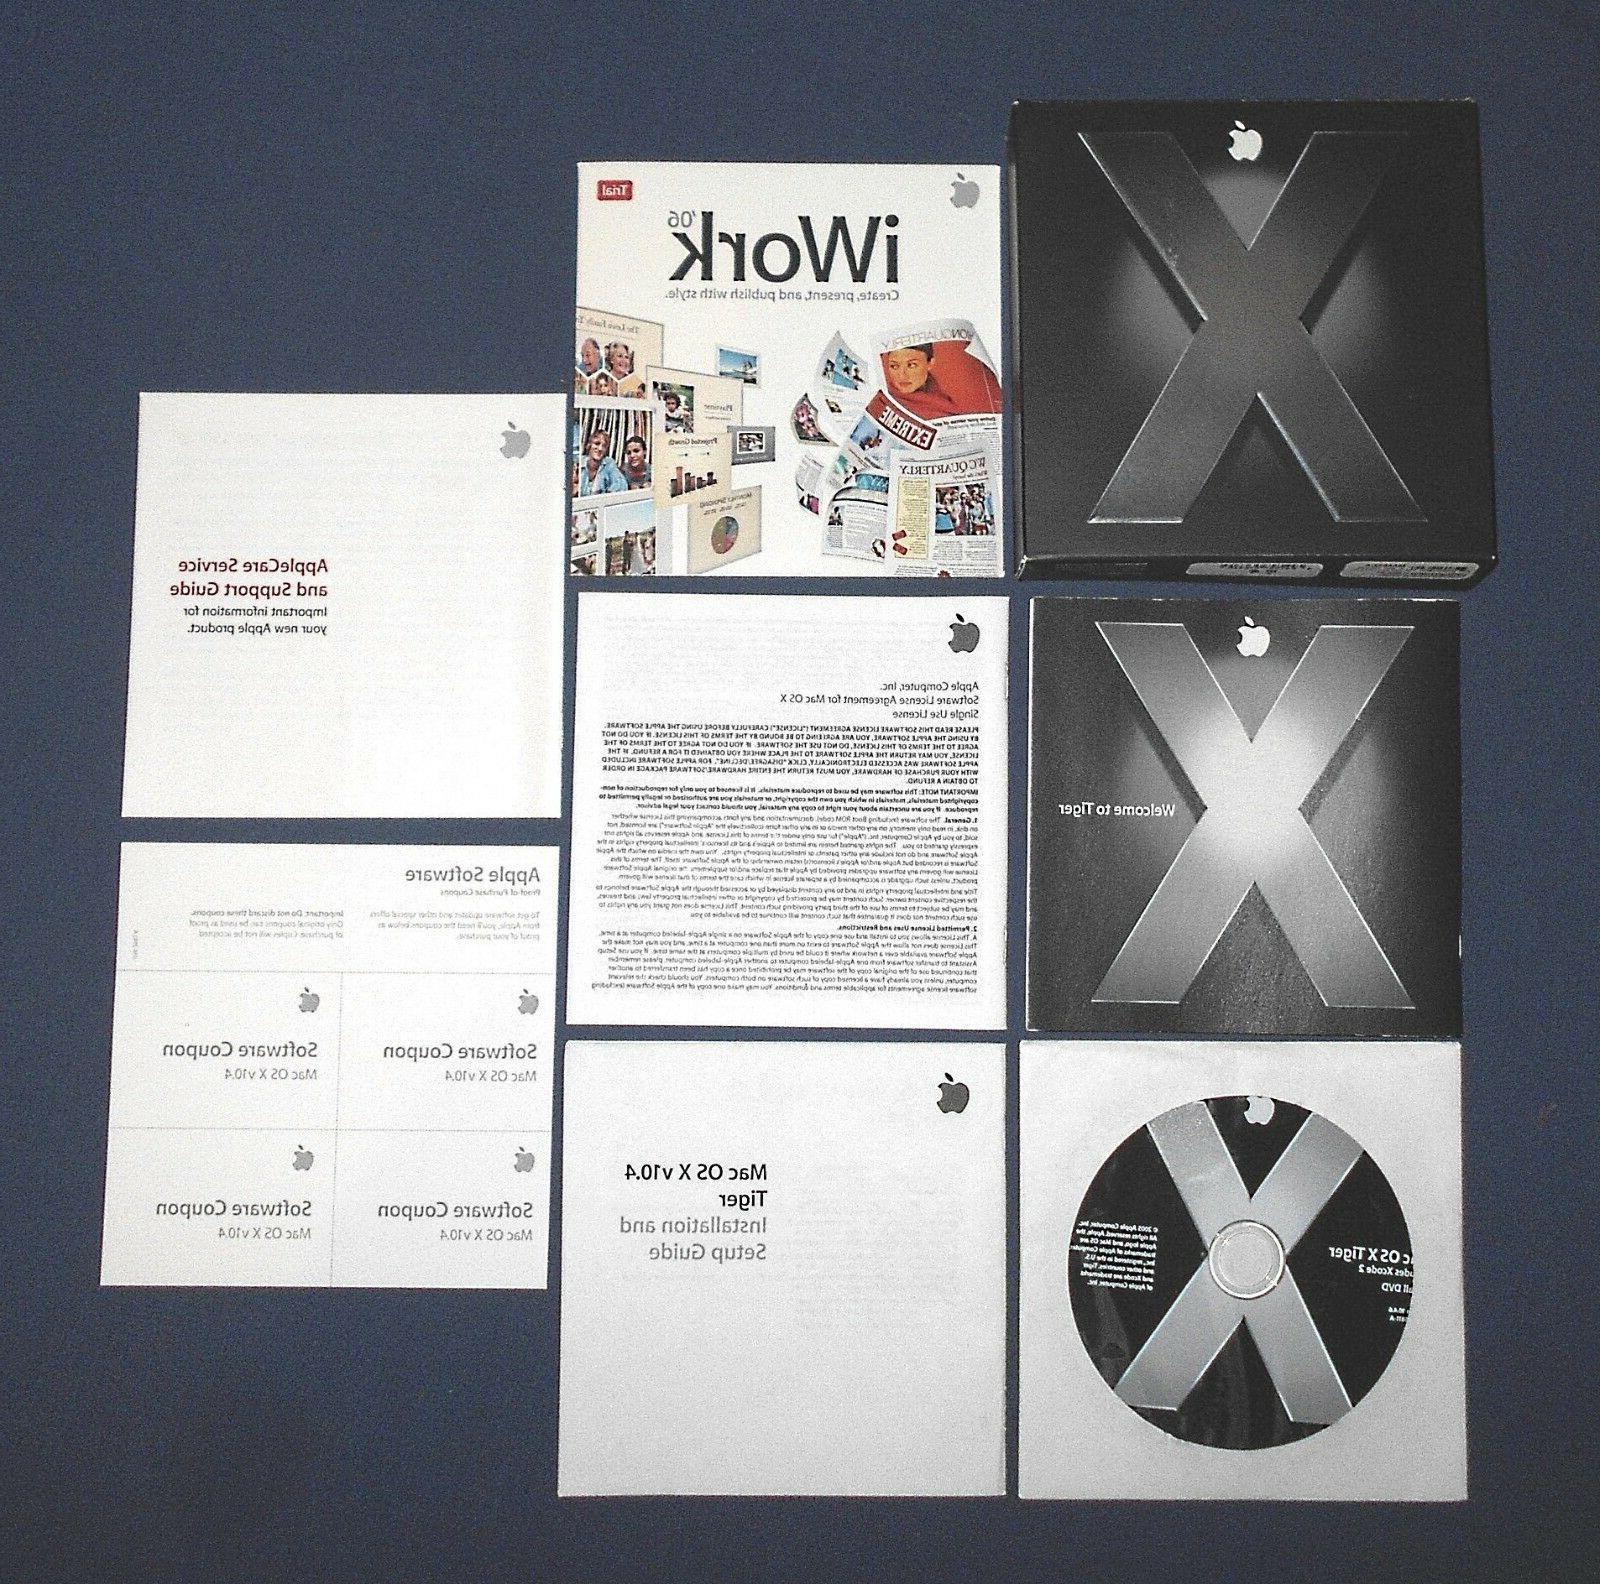 Mac OS X Version 10.4.6 Tiger ~ Apple Macintosh Computer Ope